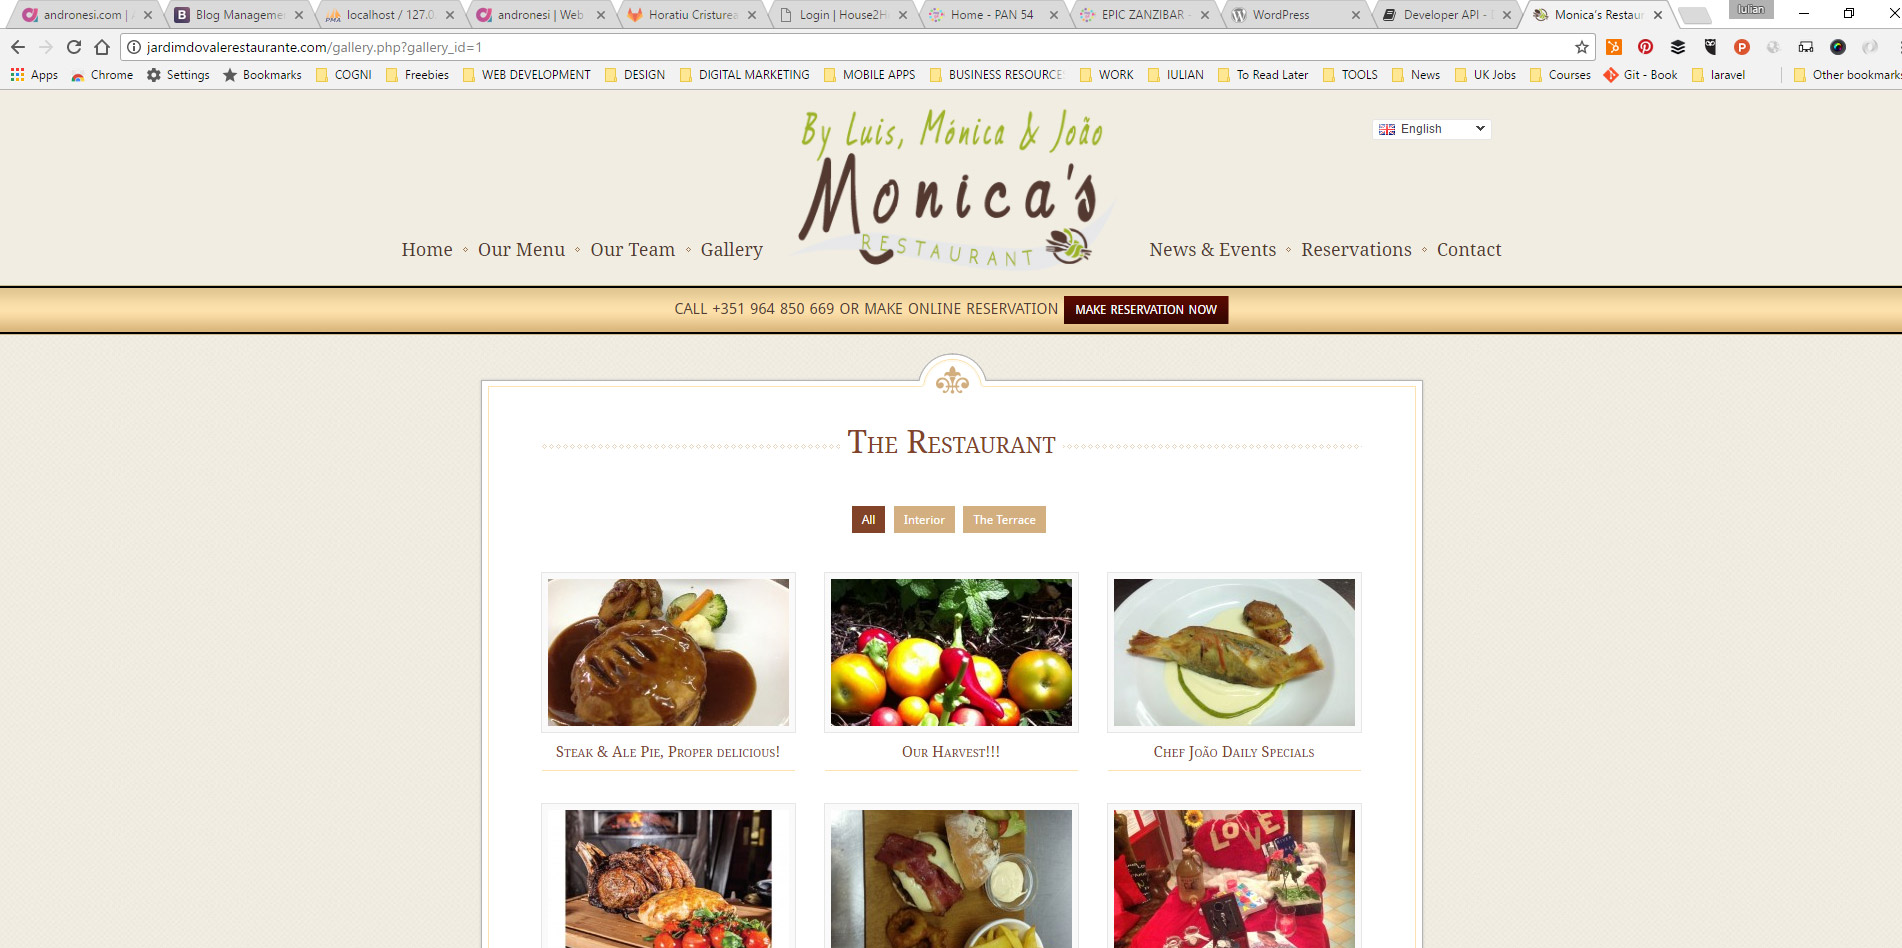 menu page websitedesign for restaurant located in the Algarve